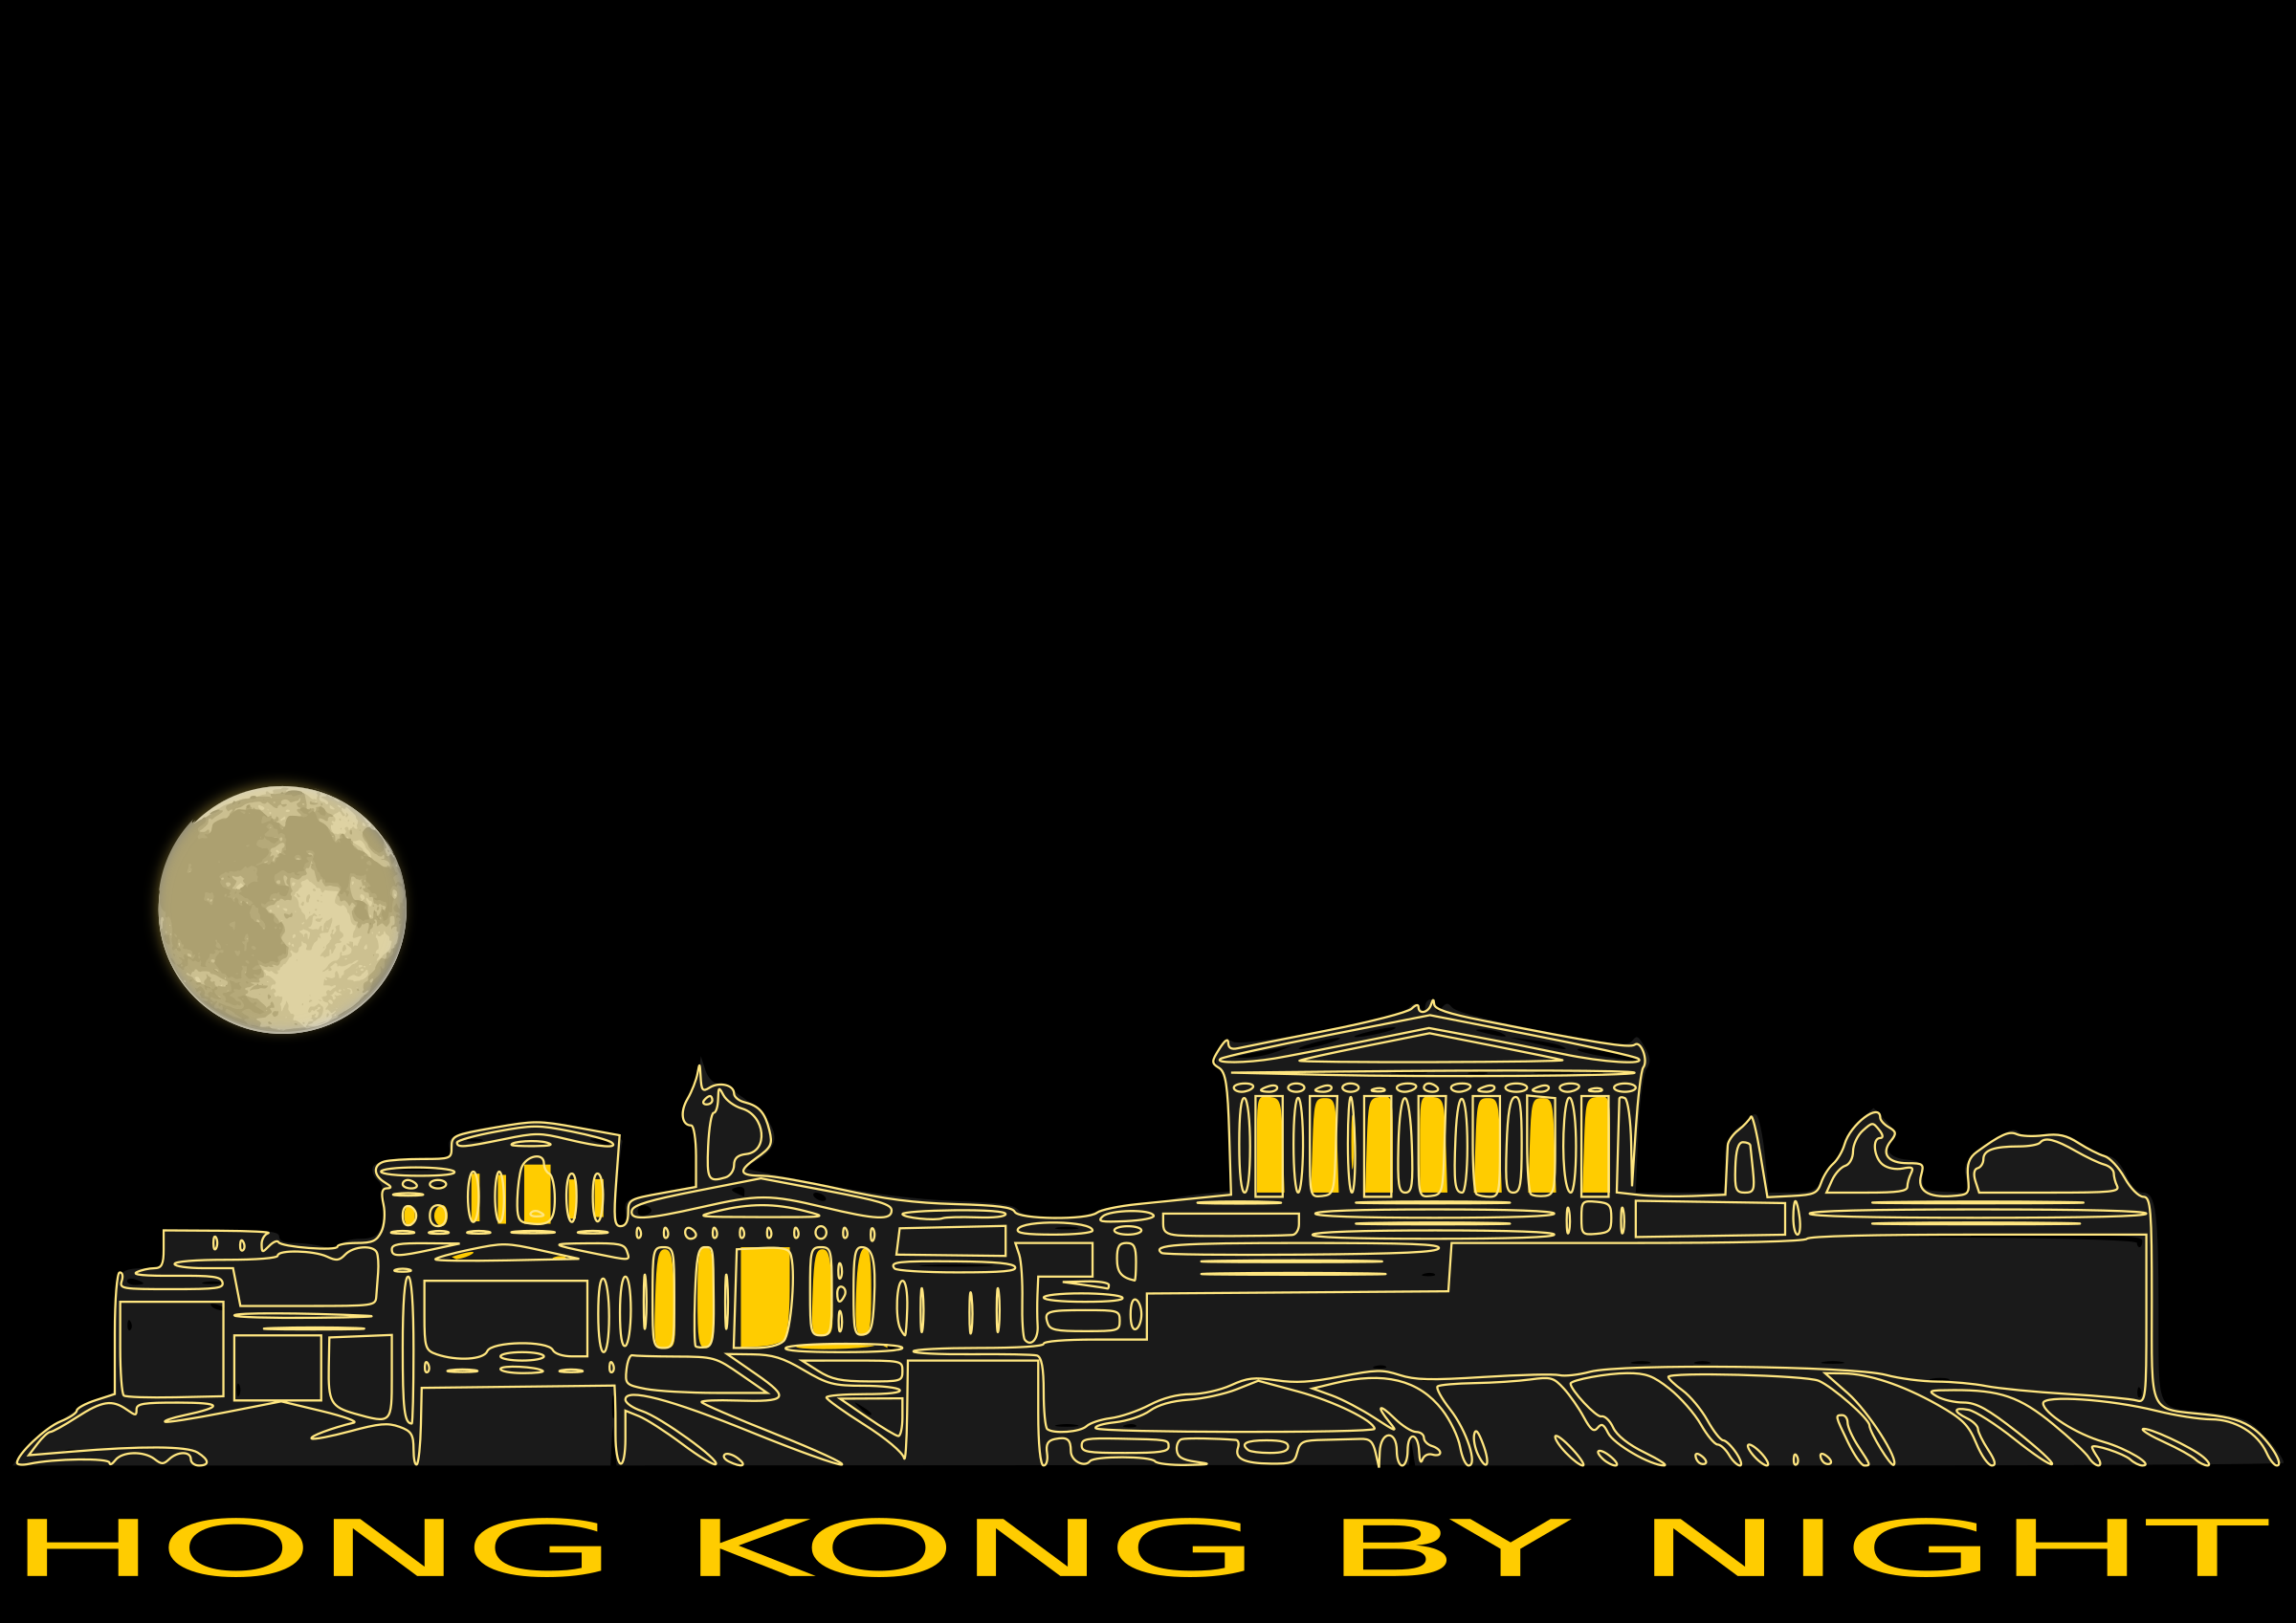 HONG KONG BY NIGHT by dordy